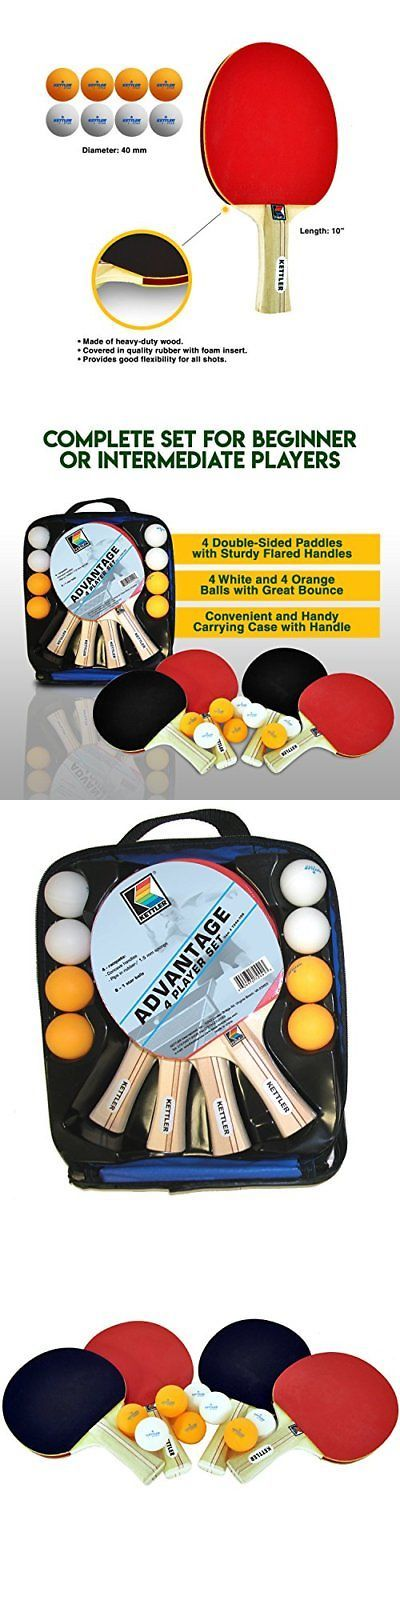 Sets 158955: Kettler Advantage Indoor Table Tennis Bundle: 4 Player Set (4 Rackets Paddles An -> BUY IT NOW ONLY: $32.49 on eBay!